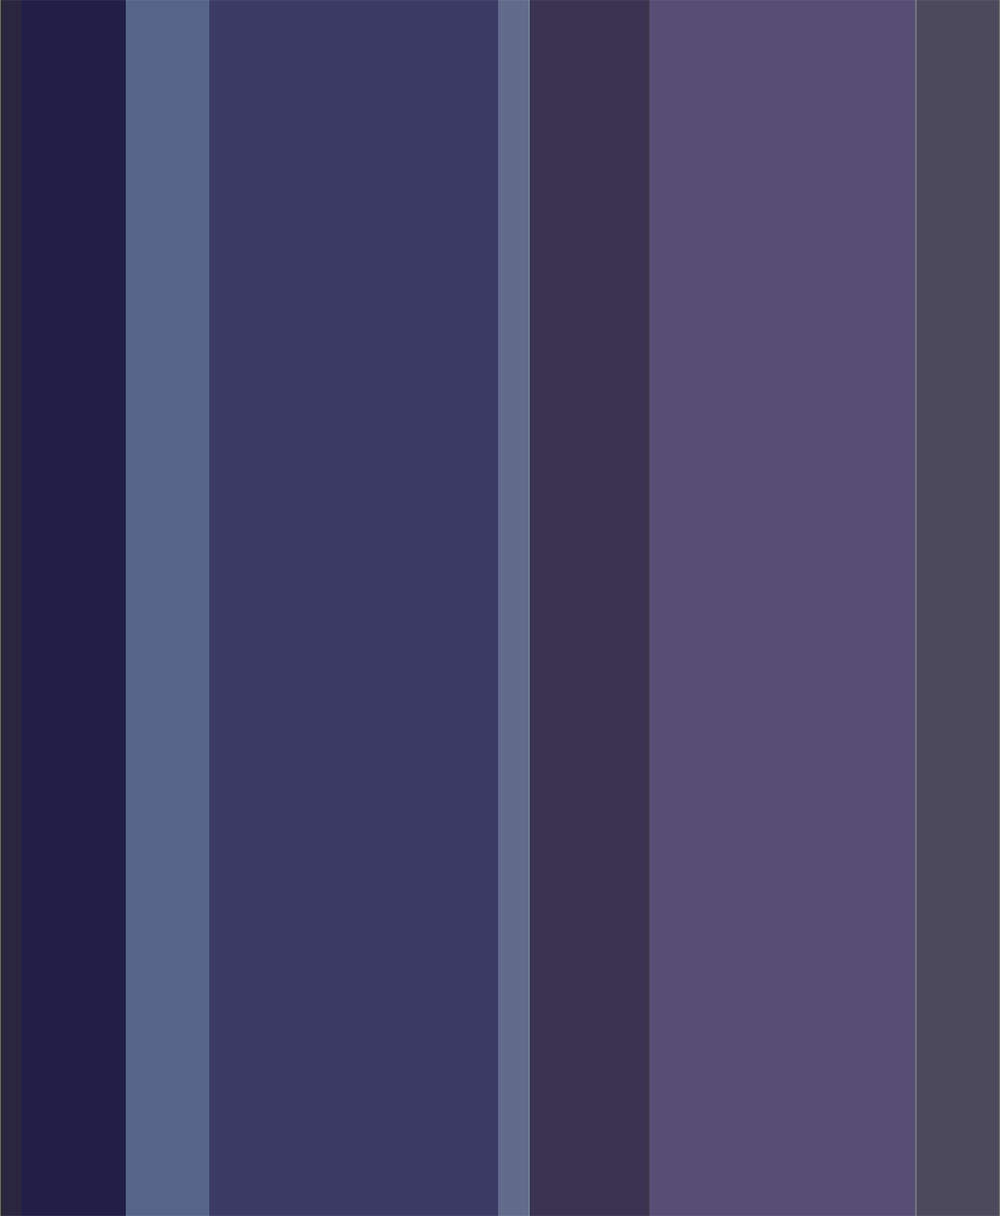 colours-20180823-sky.png